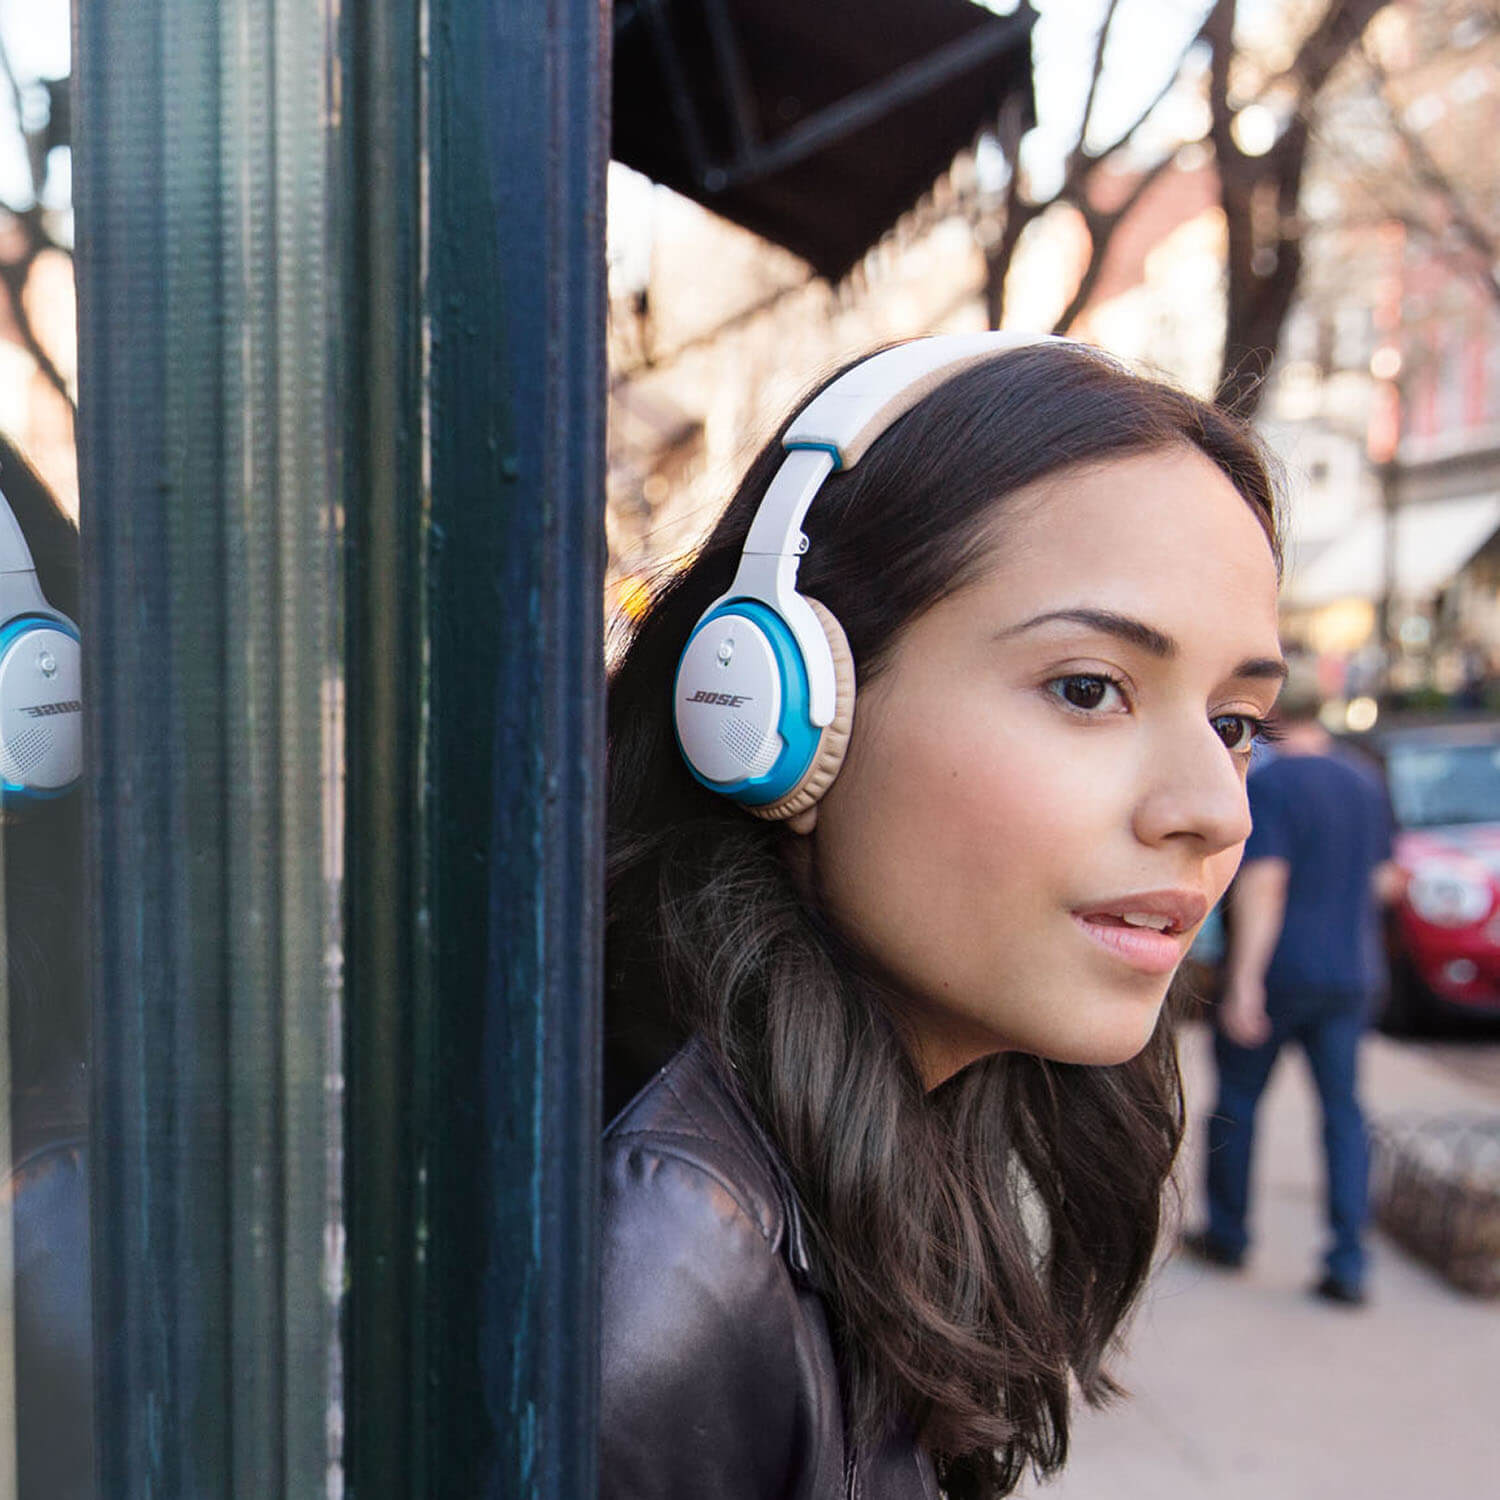 Bose On Ear Headphones Offer Superior Sound Quality L Shop In Miami